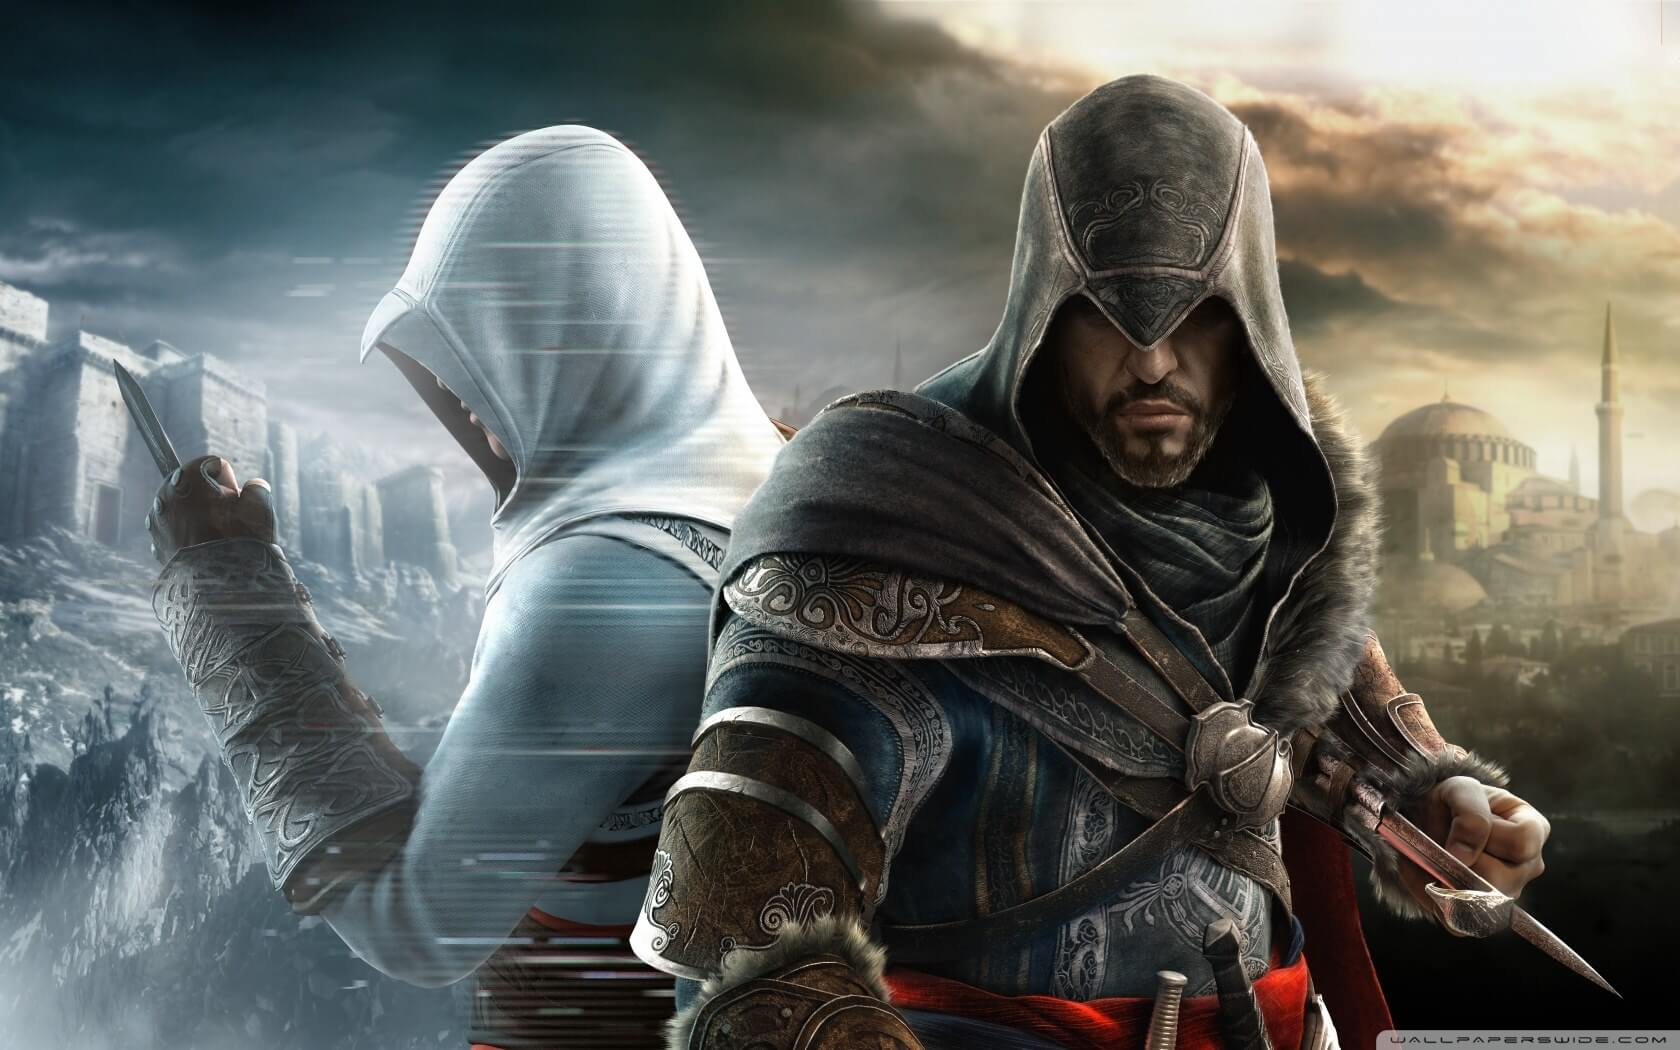 Leaked merchandise photos confirm next Assassin's Creed title